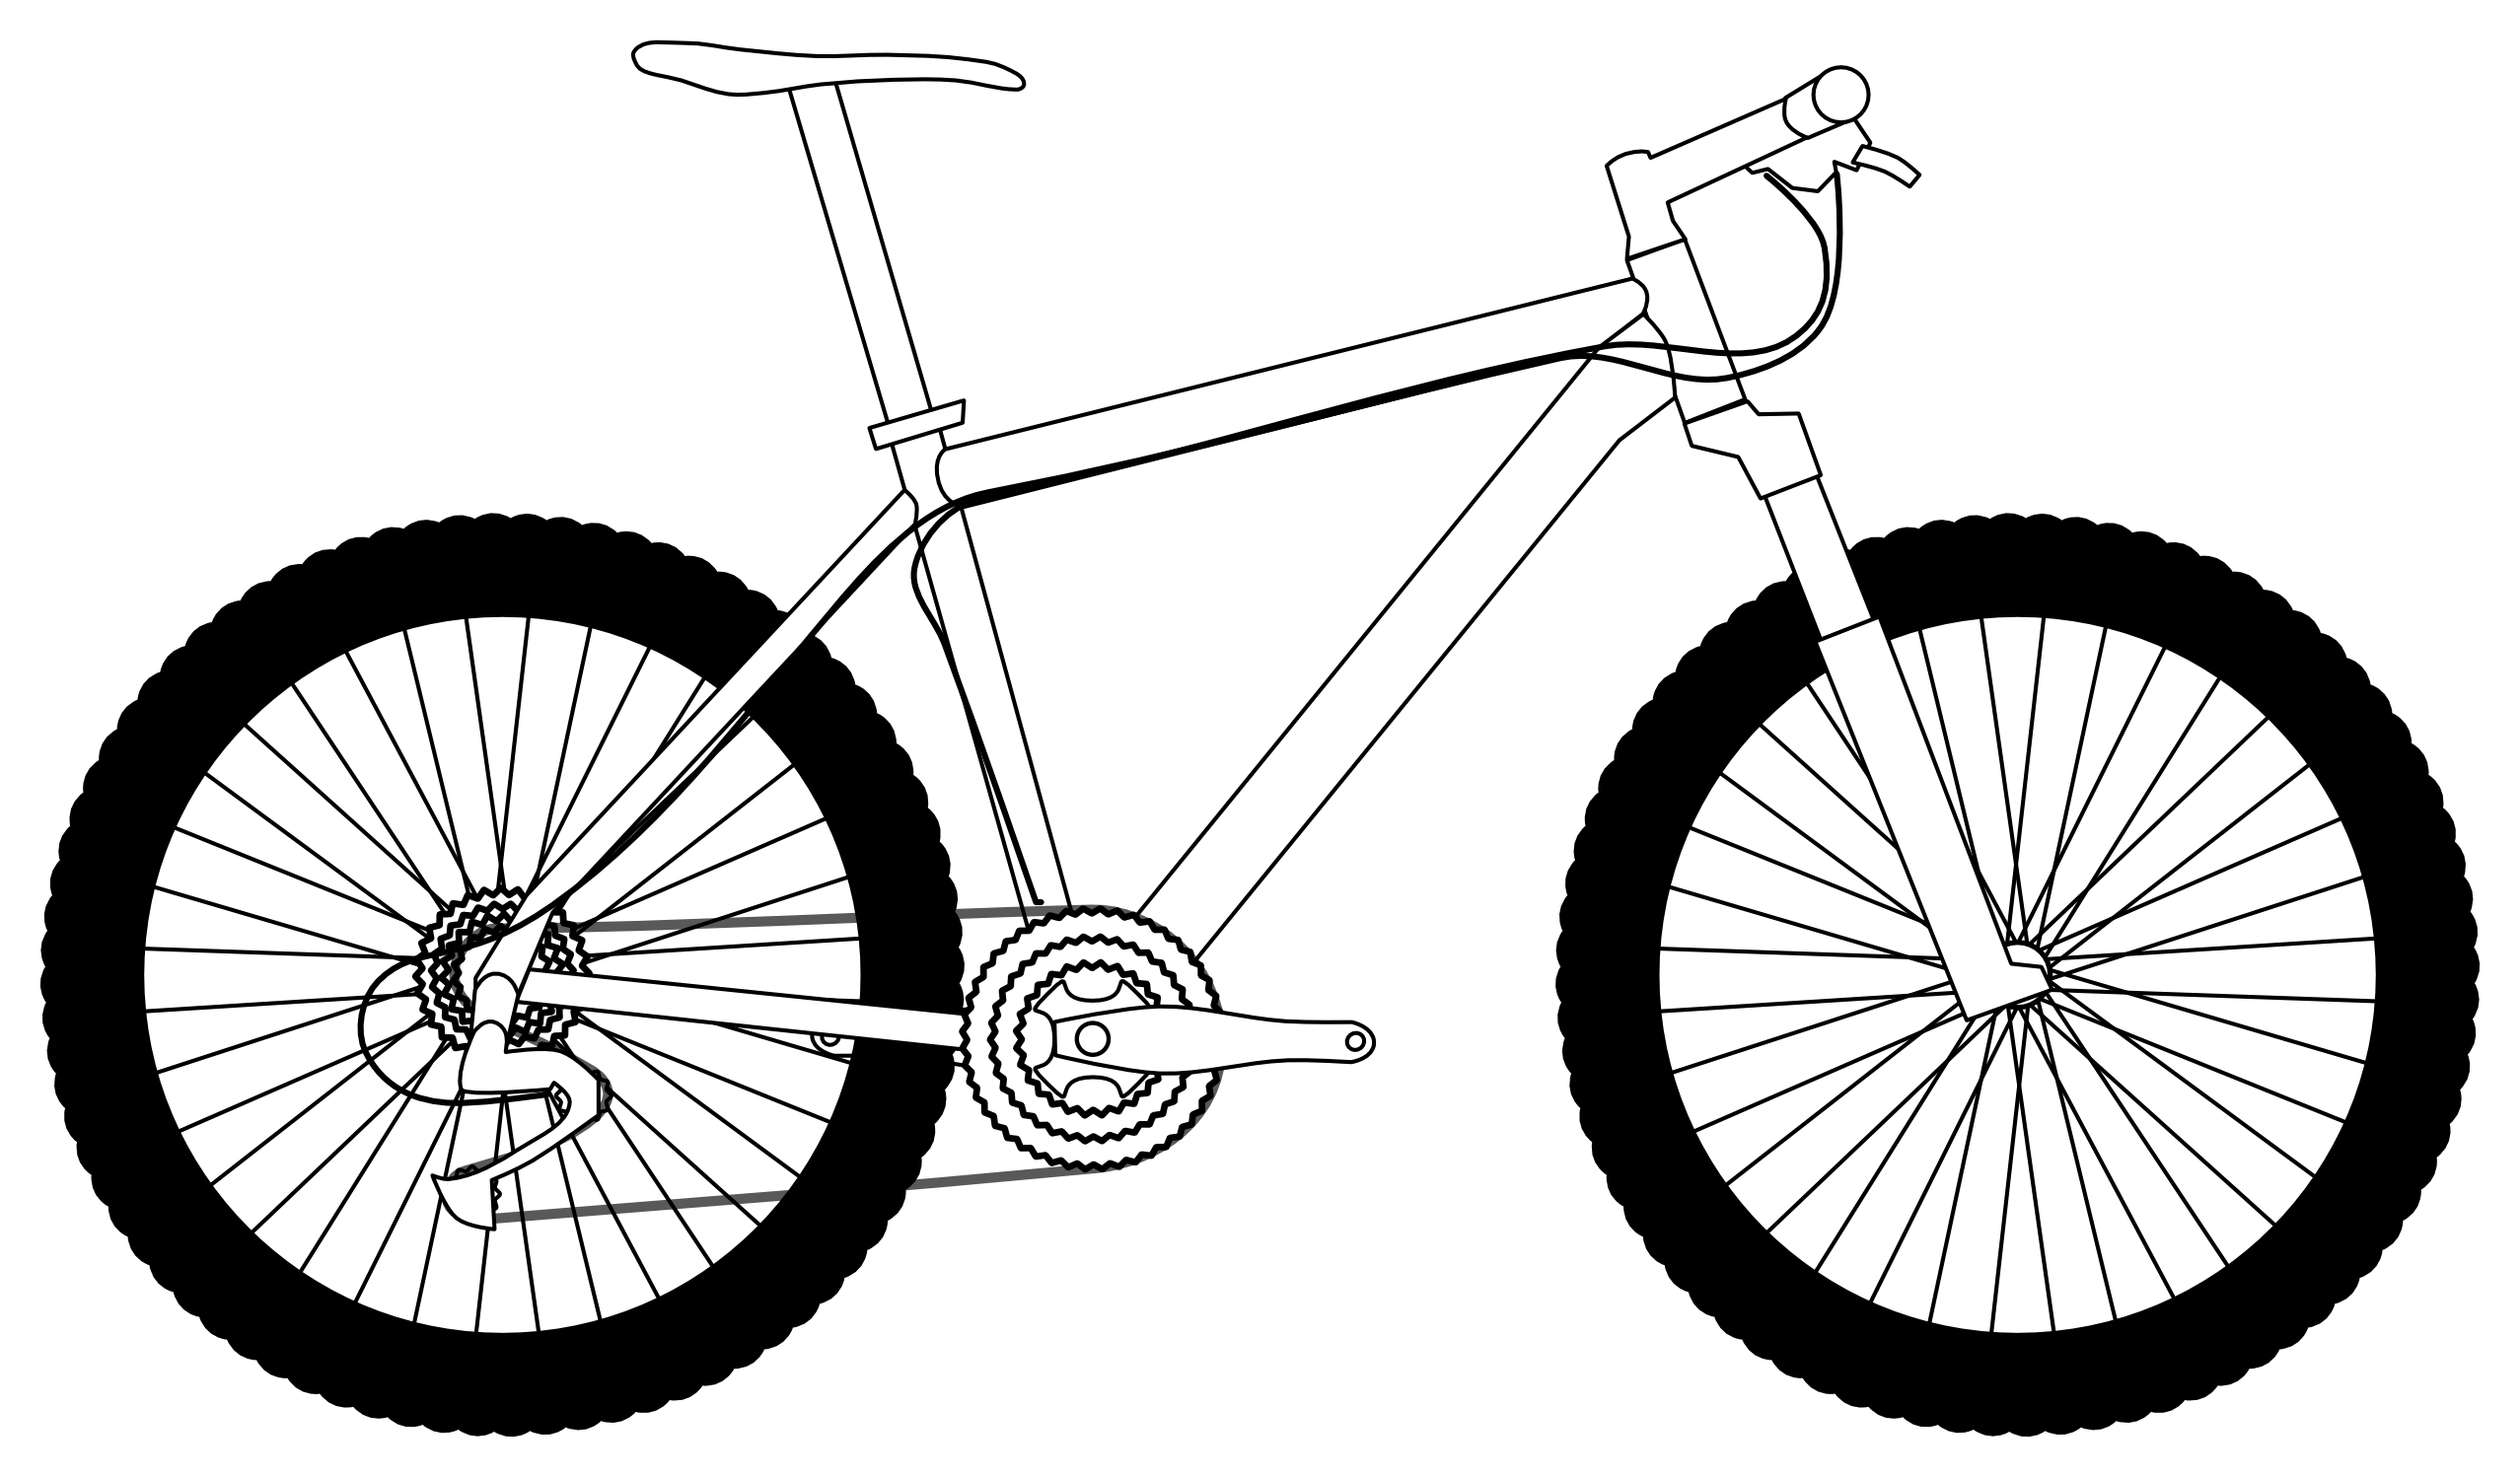 png free download Bike clipart bike scooter. Outline drawing at getdrawings.